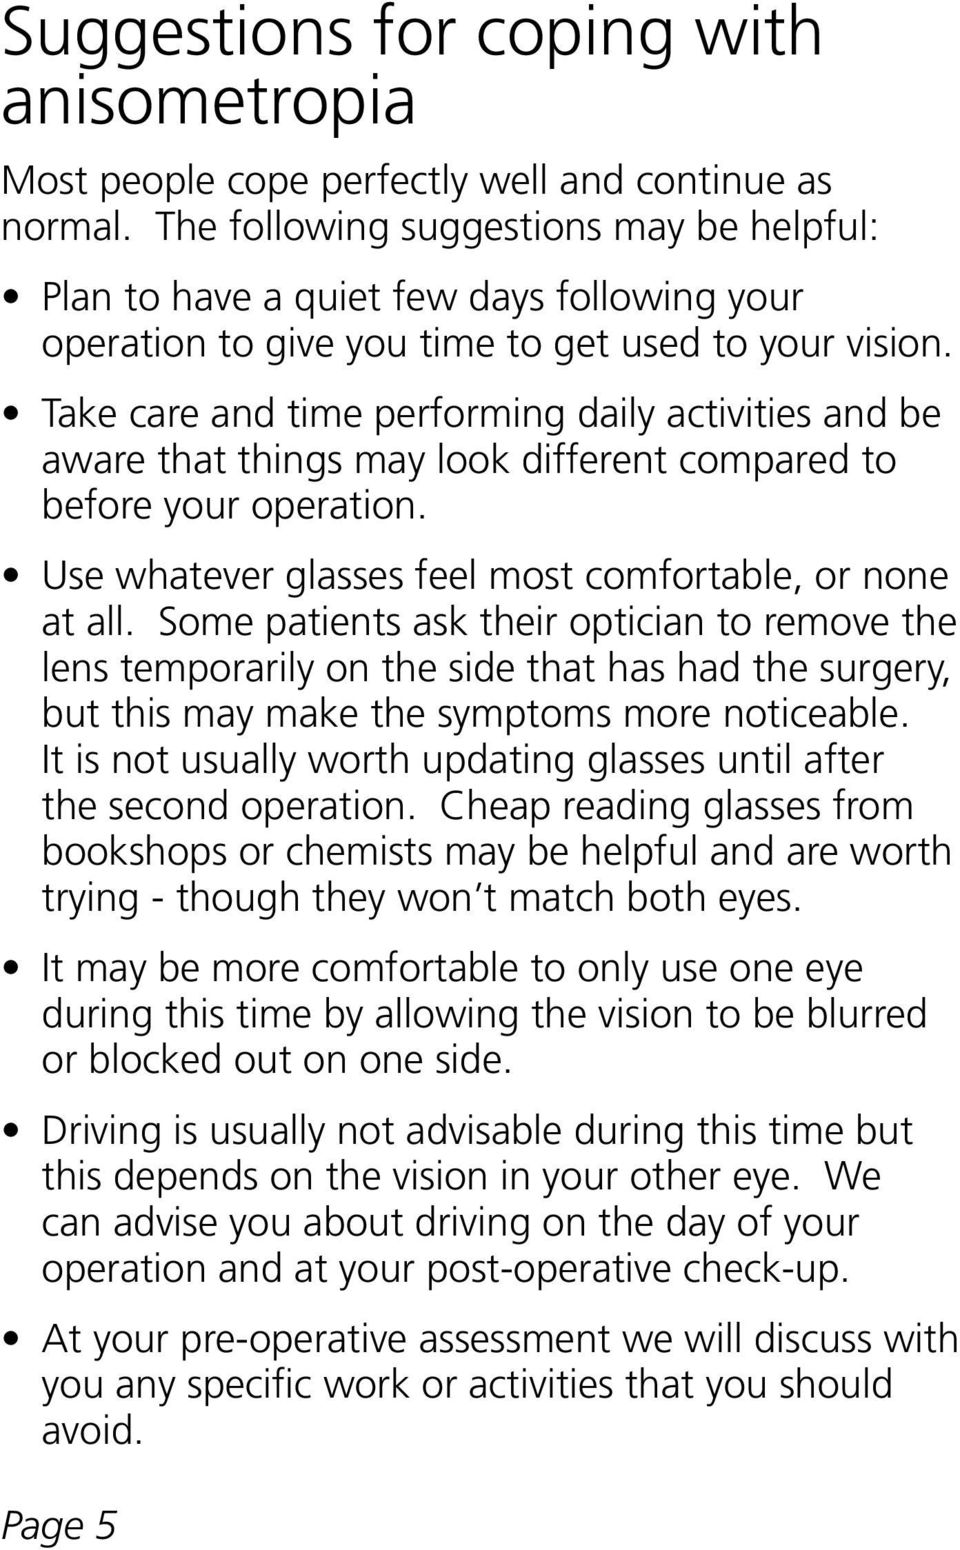 Take care and time performing daily activities and be aware that things may look different compared to before your operation. Use whatever glasses feel most comfortable, or none at all.